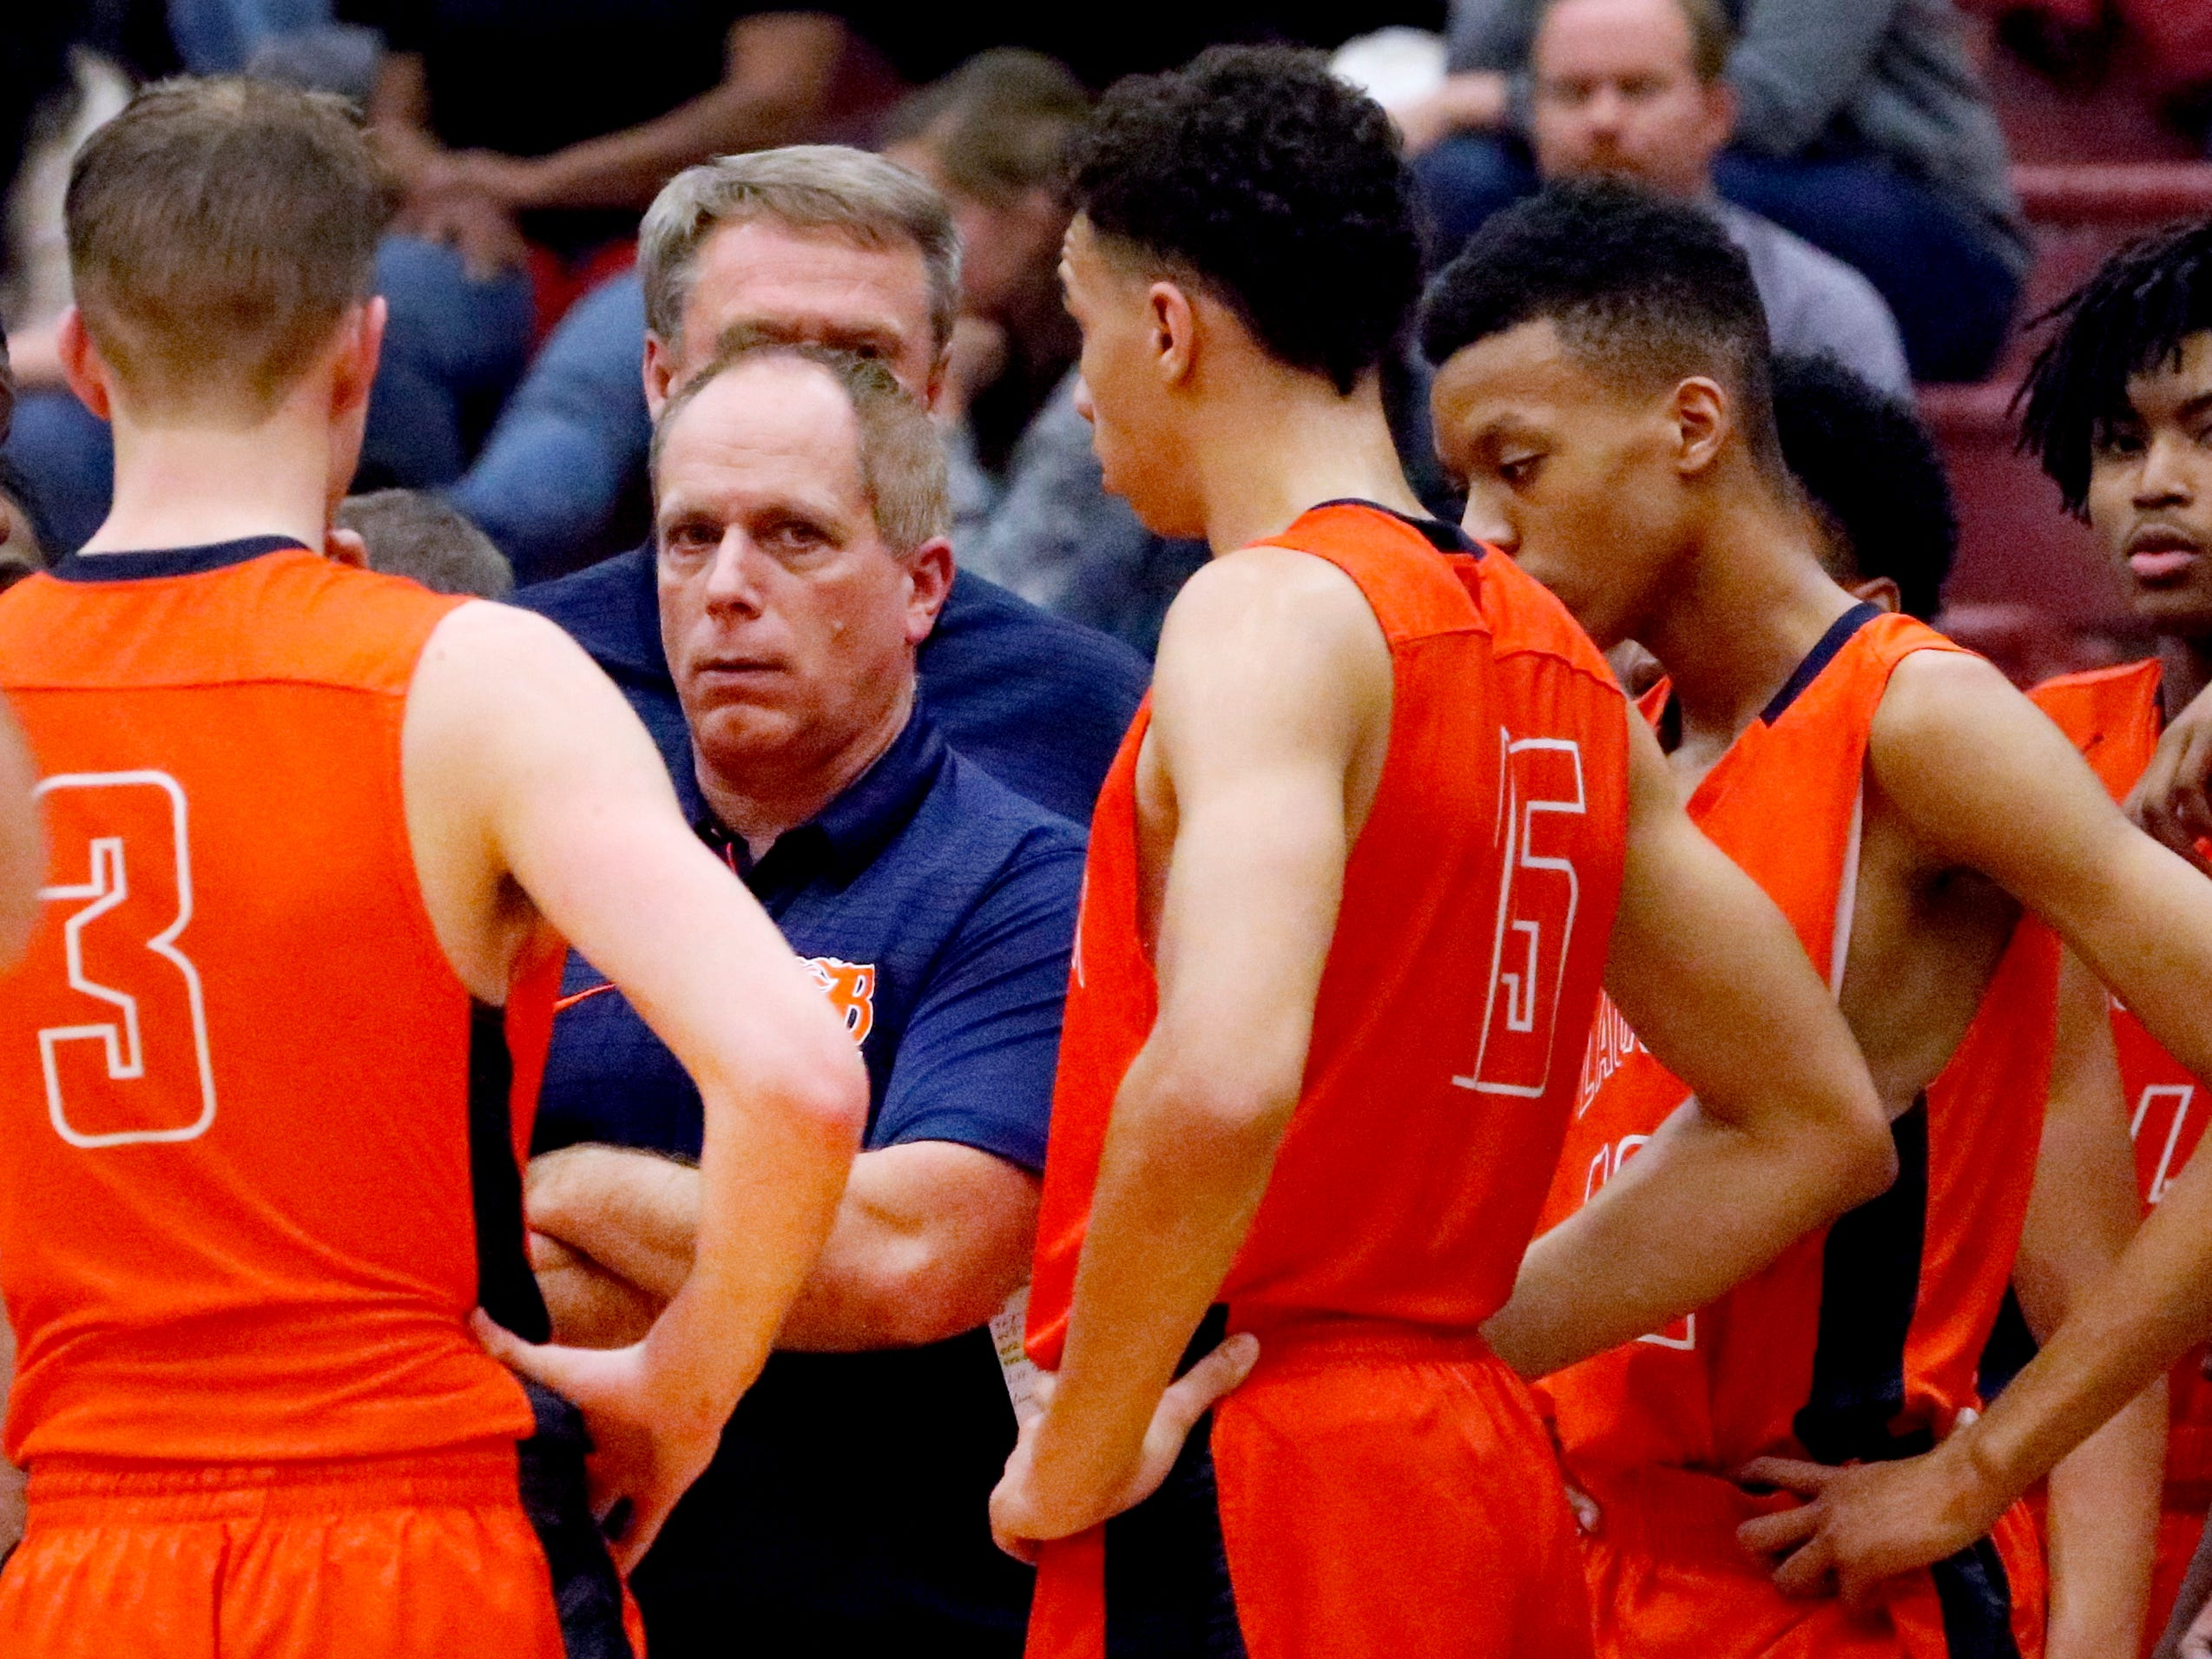 Blackman's head coach Barry Wortman talks with his players during a time out in the game against Riverdale on Tuesday Jan. 8, 2019.